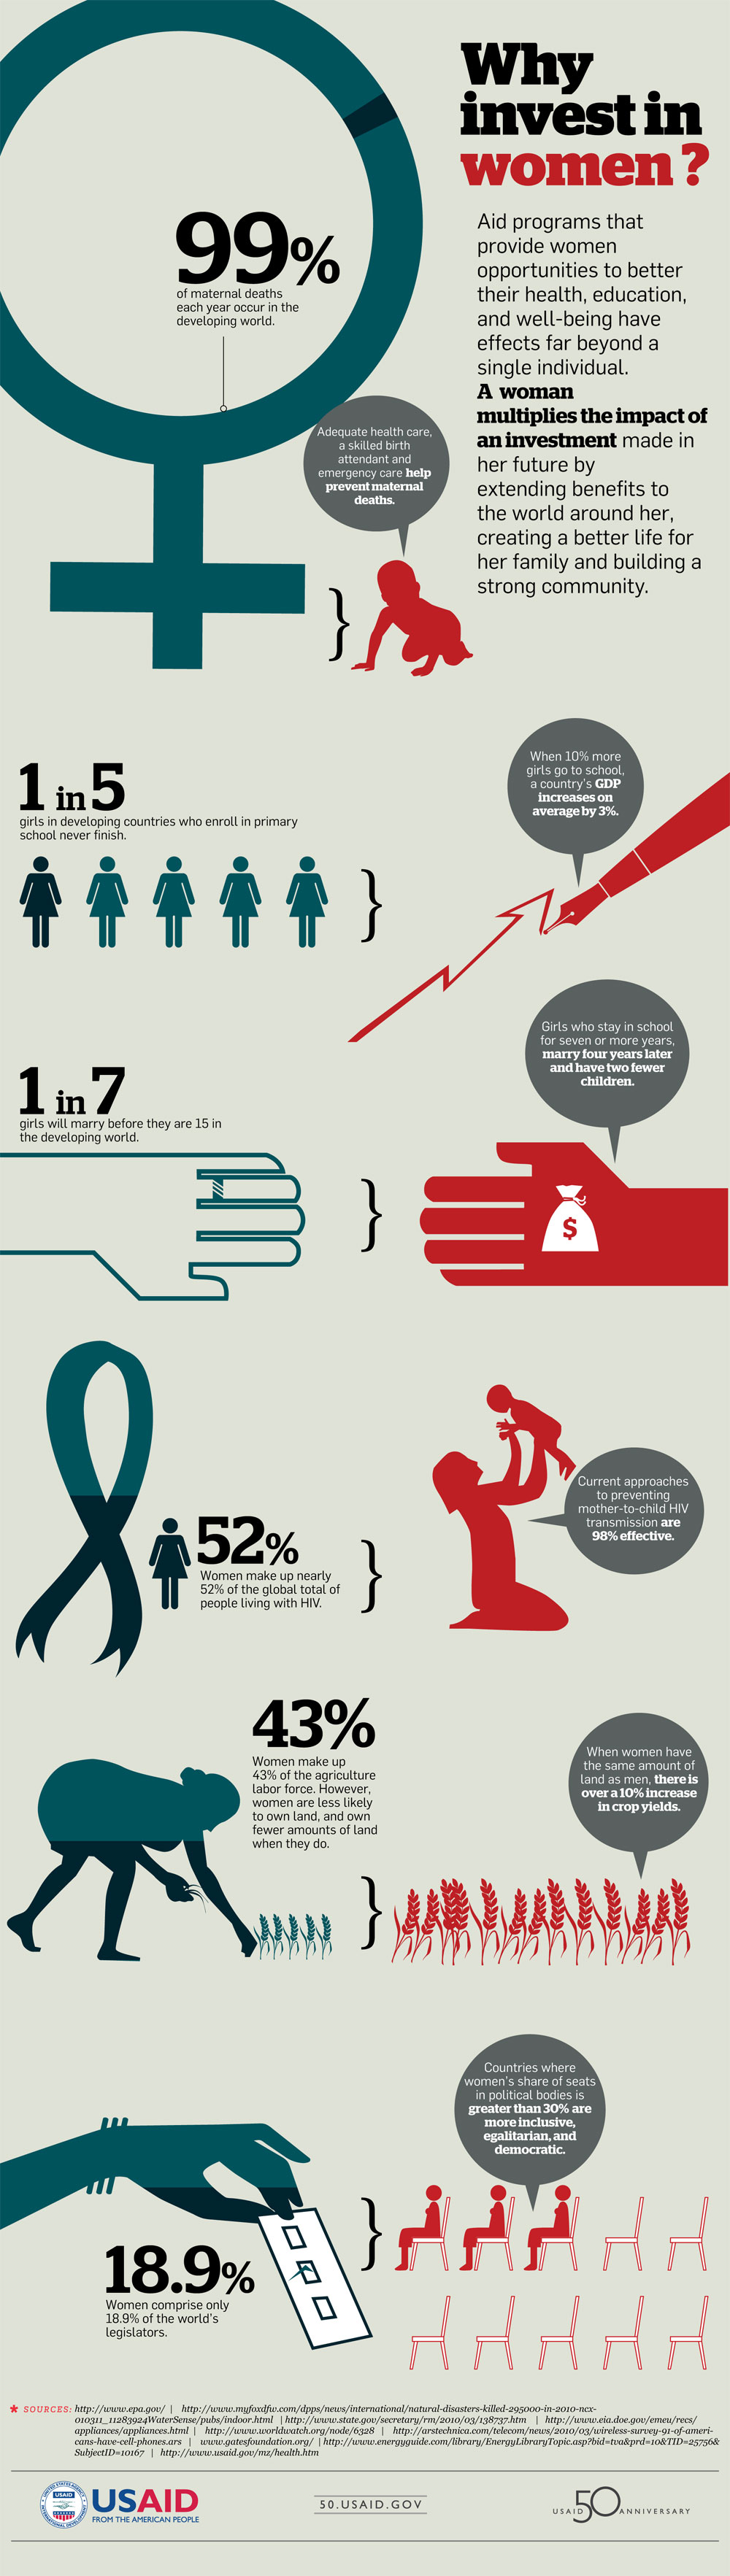 USAID women 12 Reasons Why Investing in Women Creates a Better World (Infographic)